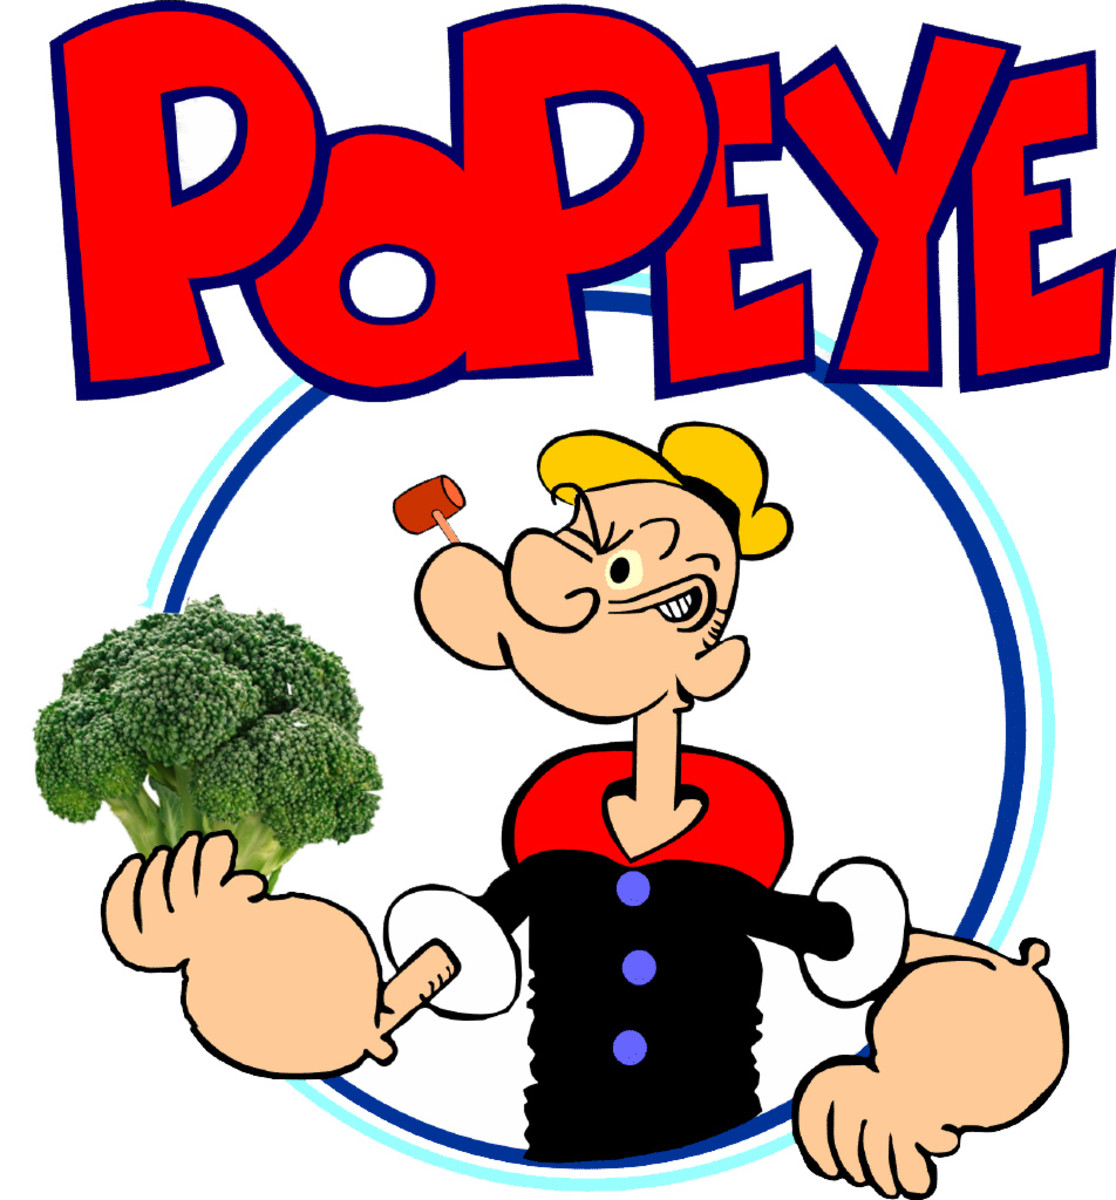 Project Popeye: Not a plan to drop spinach on Vietnam during the Vietnam War